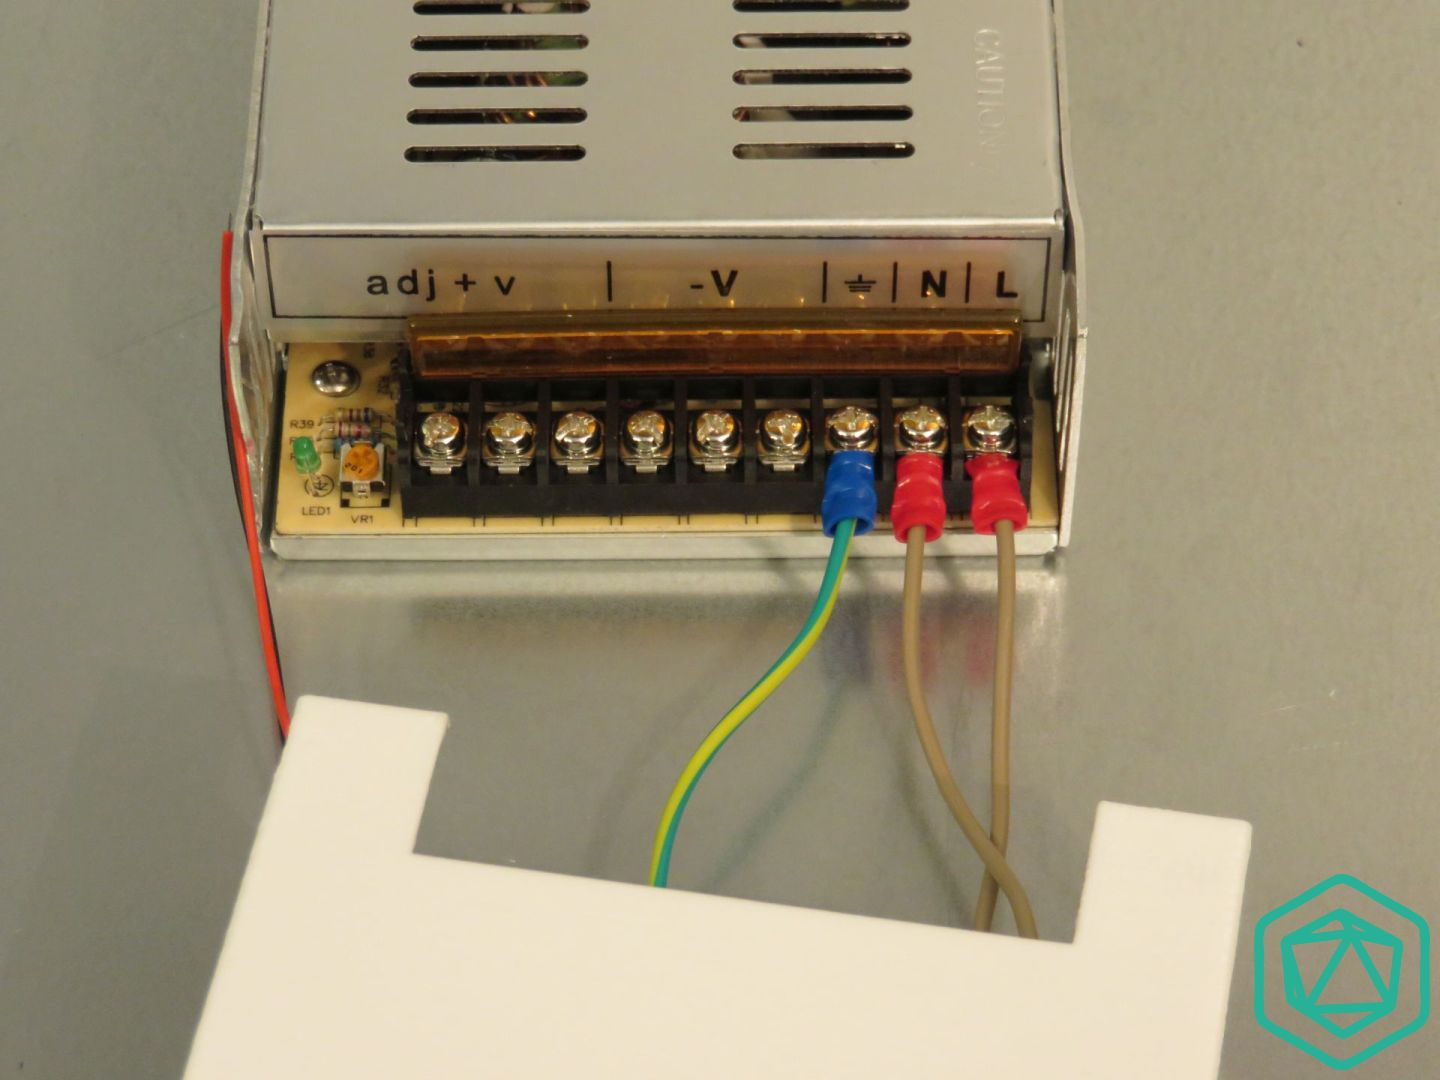 12V 360W power supply assembly - 3D Modular Systems